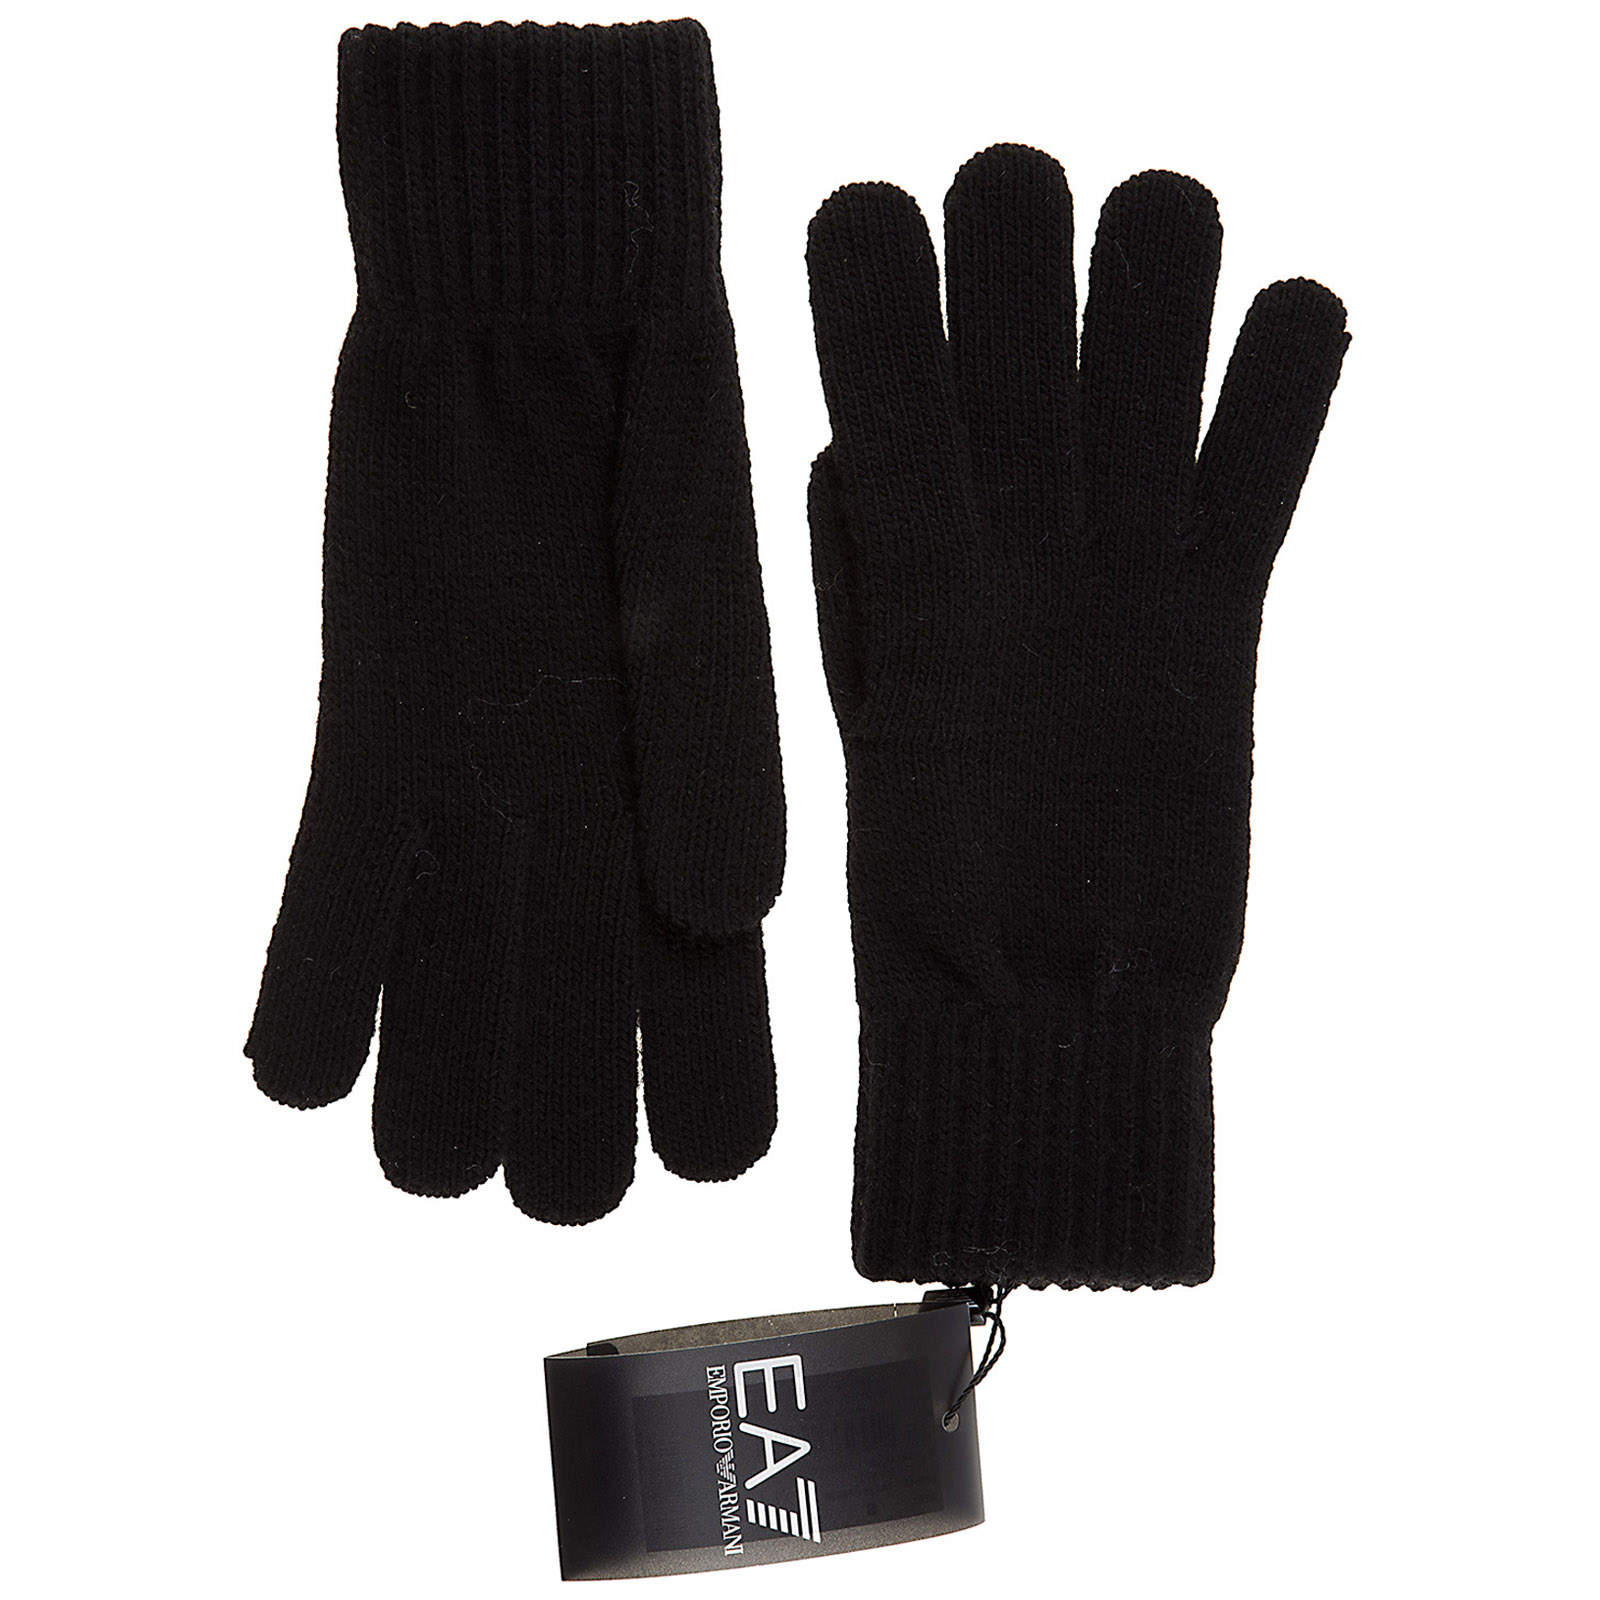 Women's gloves  mount urban